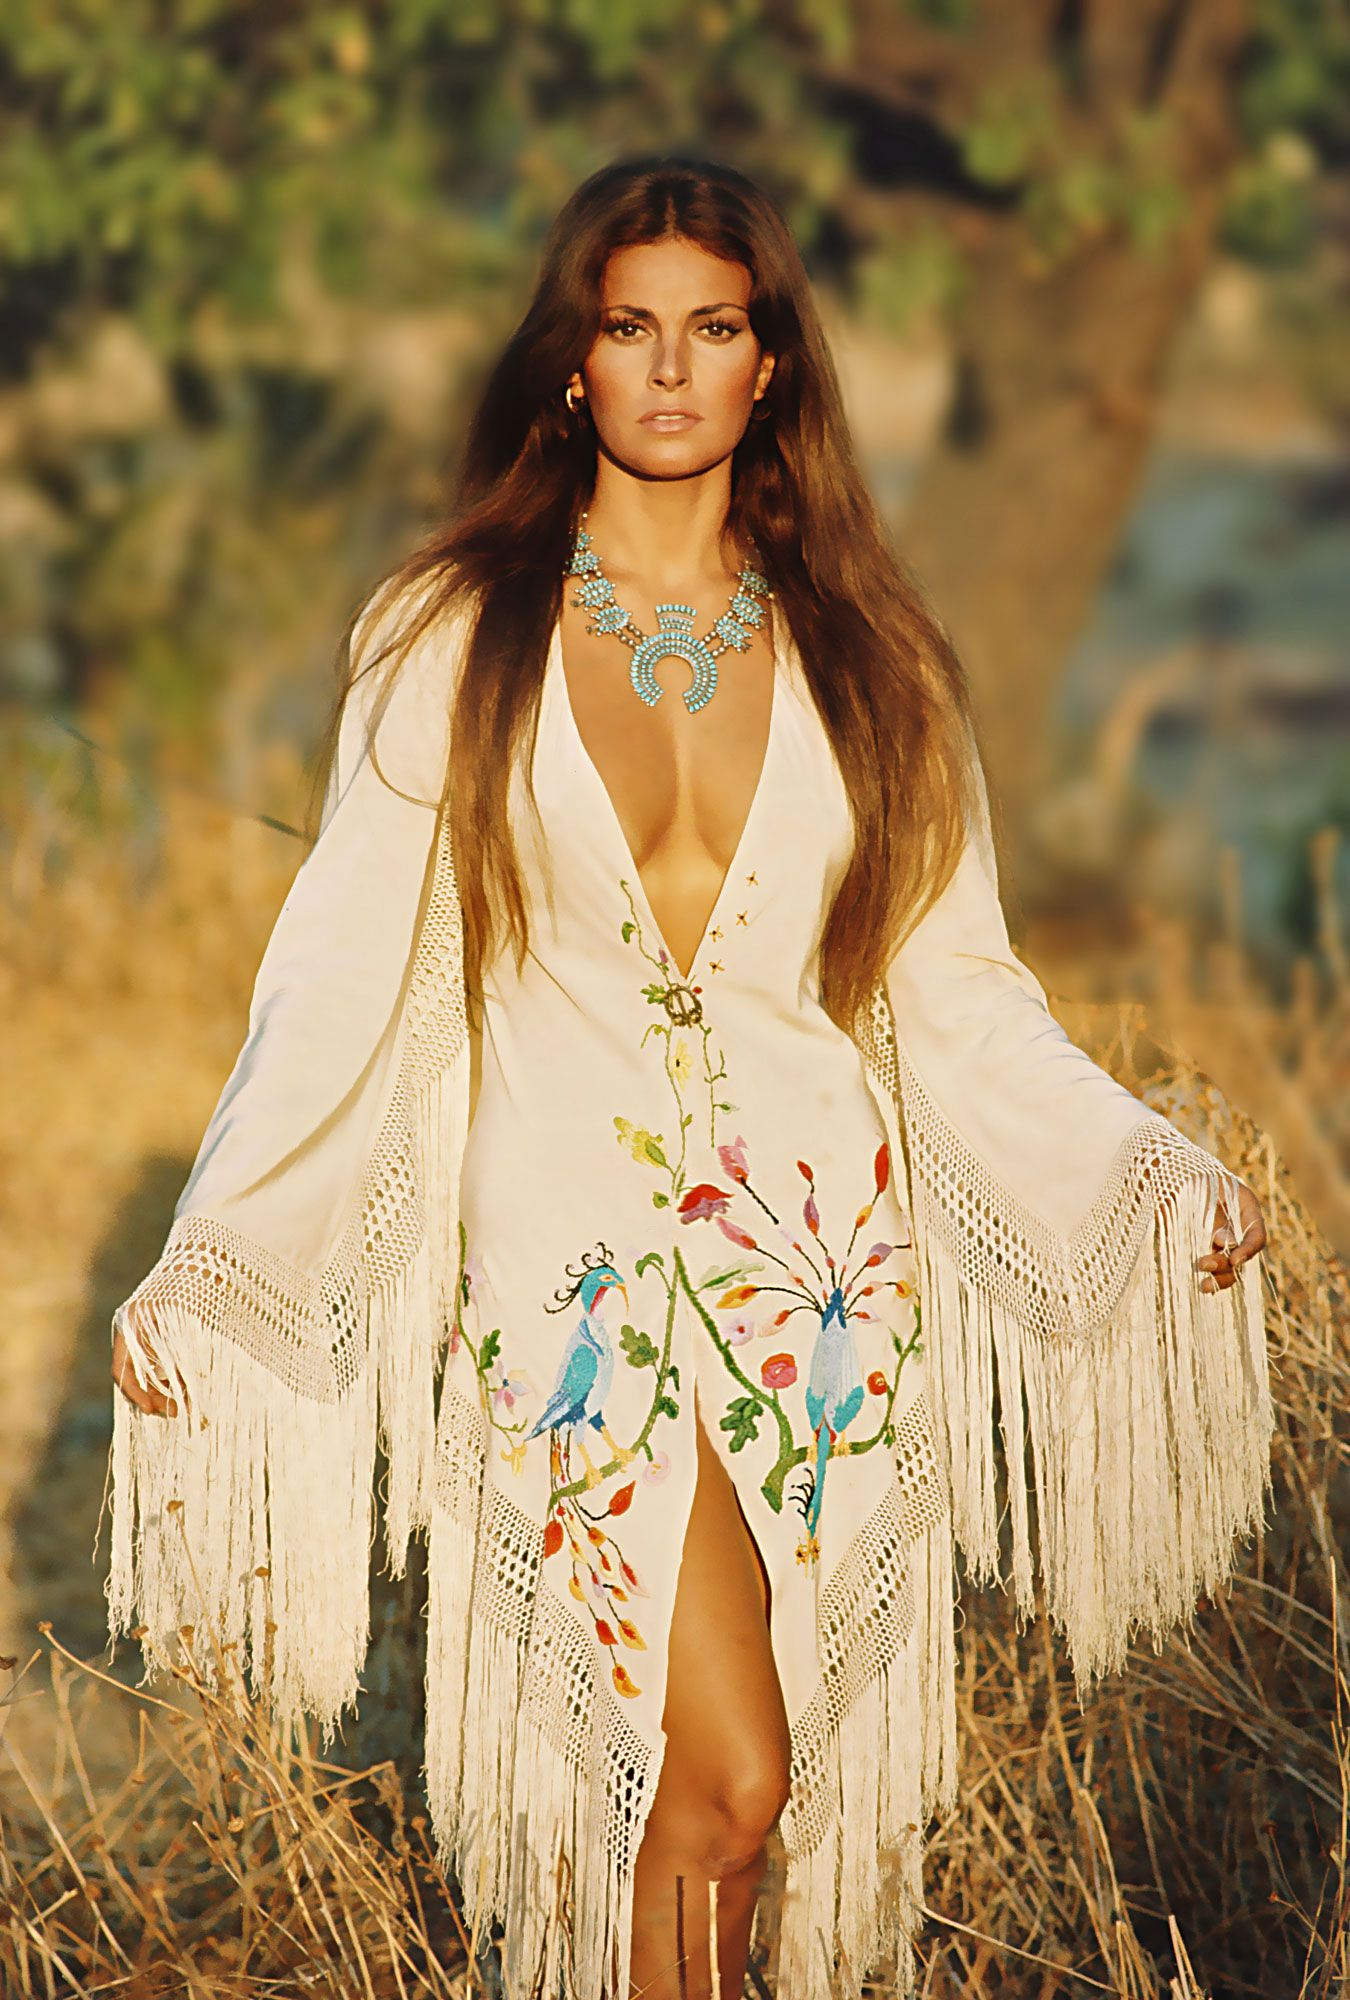 raquel welch famous people pinterest boho hippie. Black Bedroom Furniture Sets. Home Design Ideas